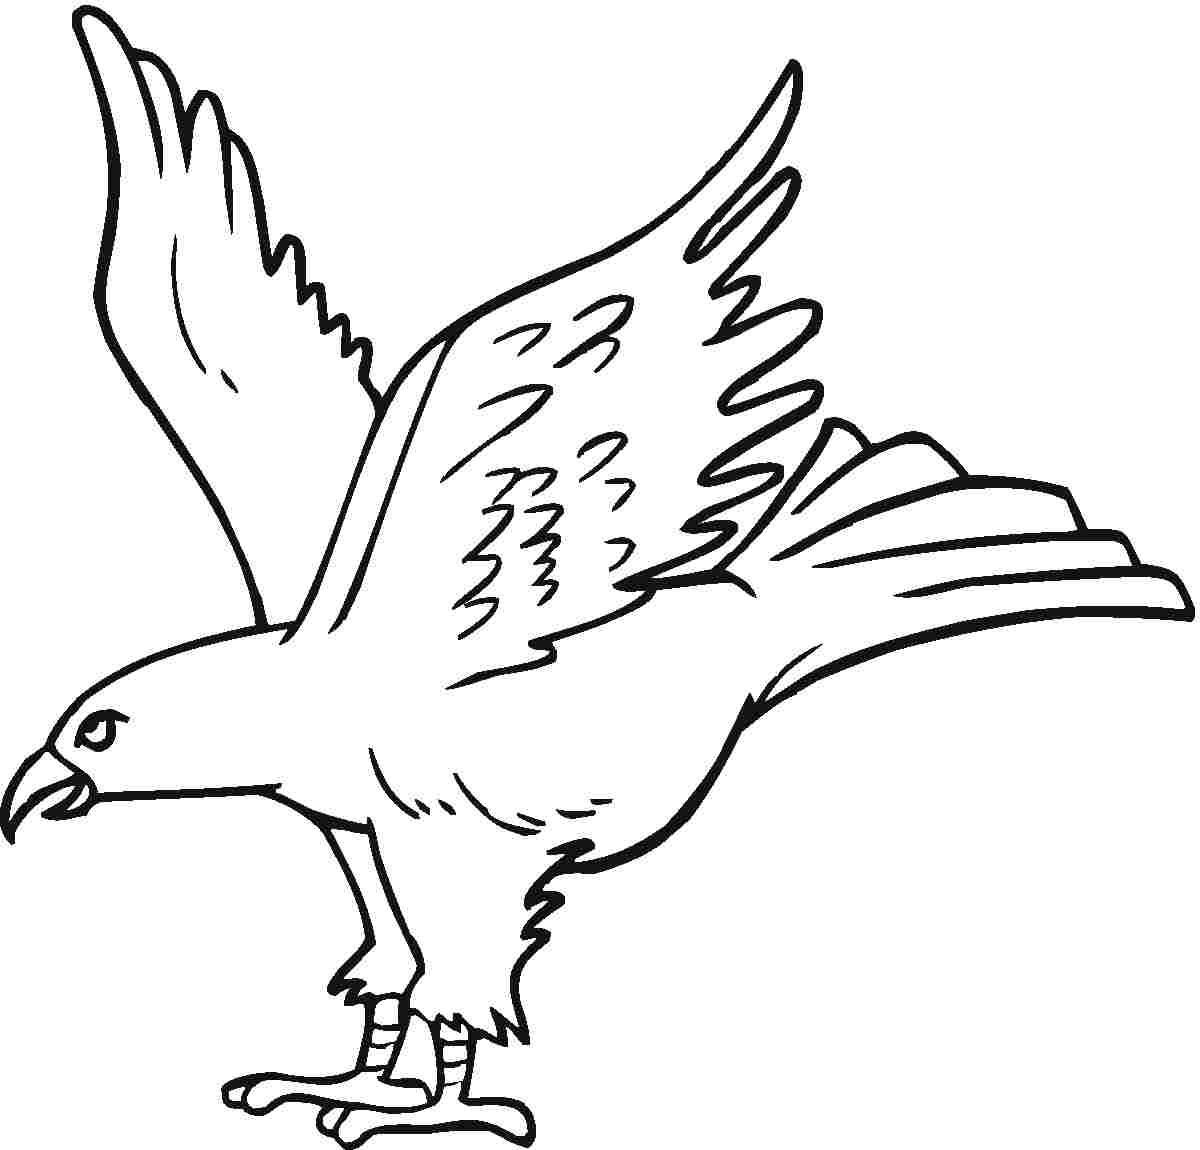 eagle coloring pages printable eagle coloring pages to download and print for free eagle coloring printable pages